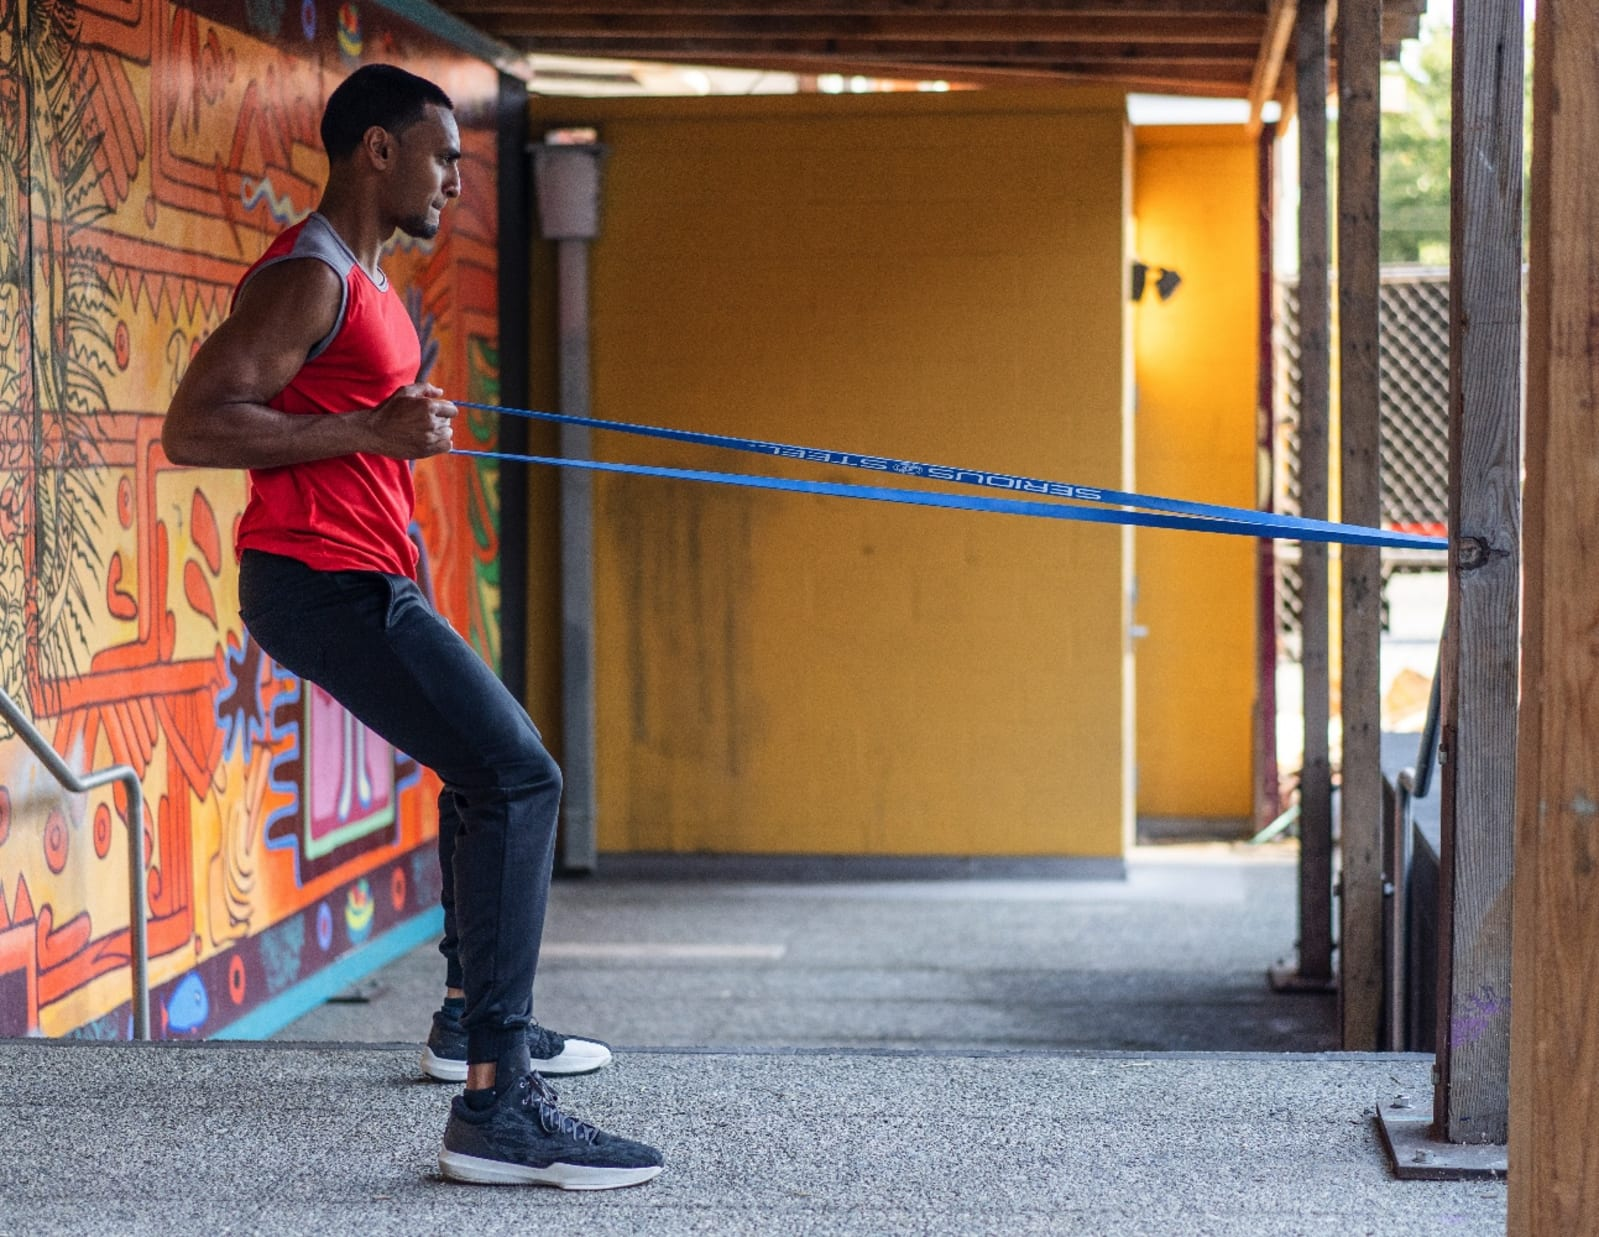 Workout gear how engadget staffers are finding solace during the coronavirus crisis - 947fda60 fa52 11e9 b73b dbd78100fe78 client a1acac3e1b3290917d92 signature 3af5bb199fbffa779616099458bc3a31d0657e2a - How Engadget staffers are finding solace during the coronavirus crisis how engadget staffers are finding solace during the coronavirus crisis - 947fda60 fa52 11e9 b73b dbd78100fe78 client a1acac3e1b3290917d92 signature 3af5bb199fbffa779616099458bc3a31d0657e2a - How Engadget staffers are finding solace during the coronavirus crisis